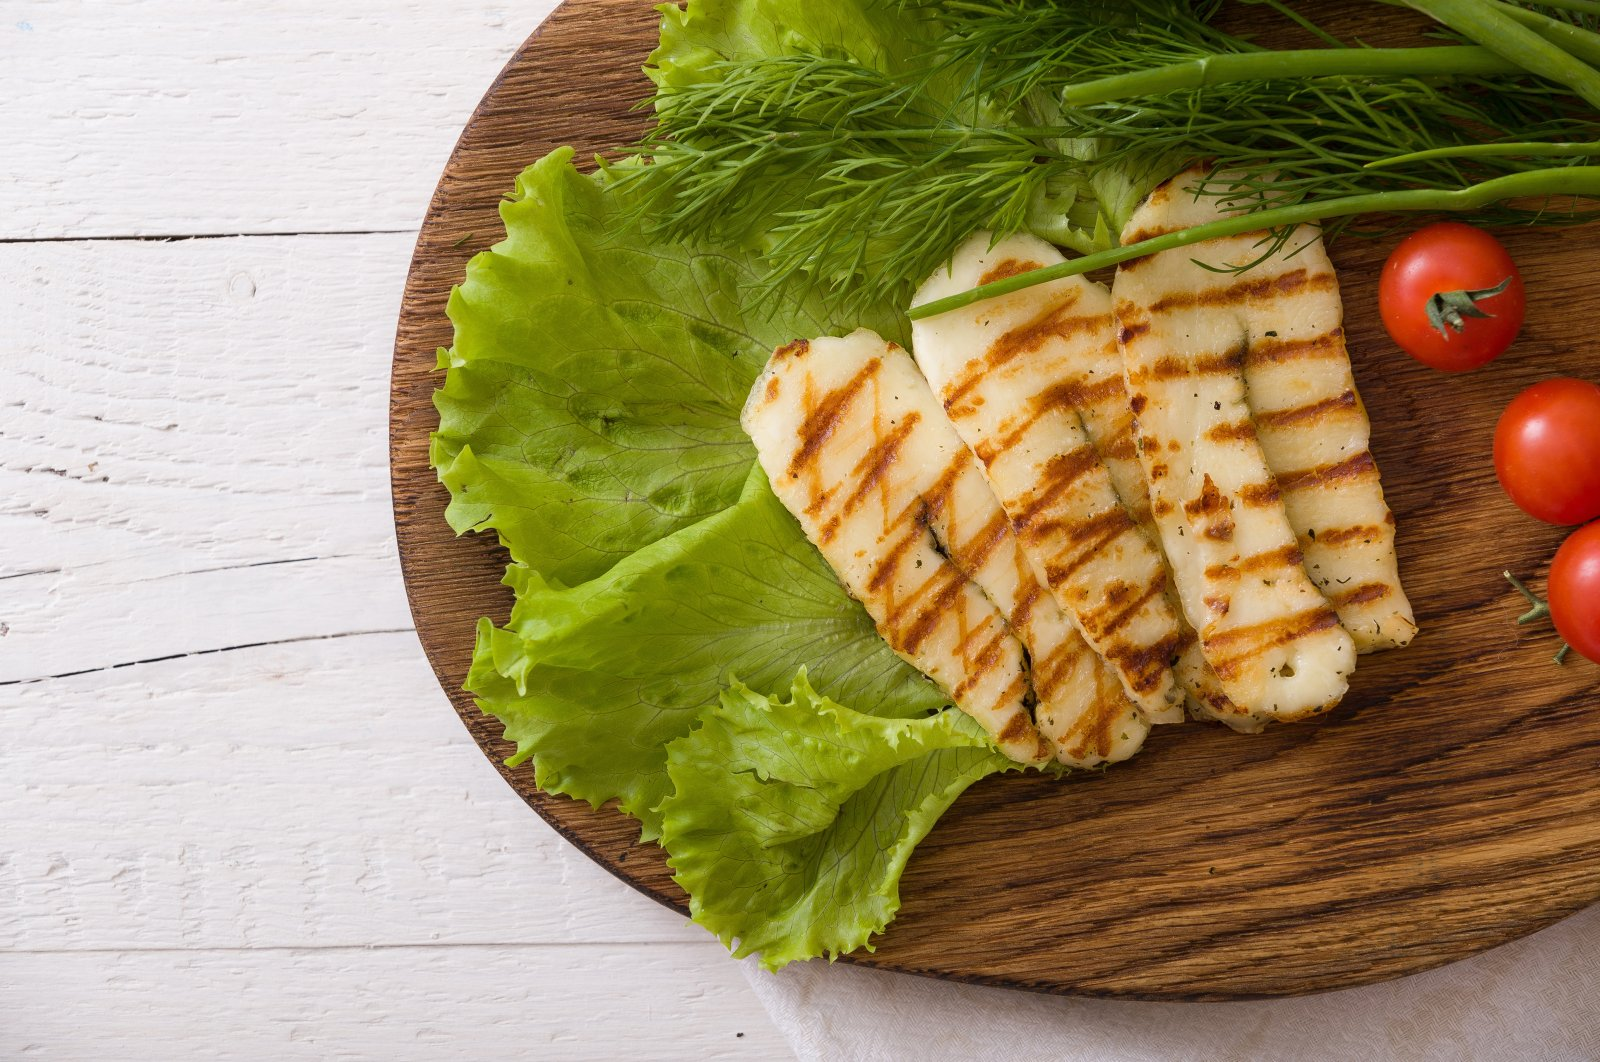 Slices of grilled halloumi cheese with green salad, fresh herbs and tomatoes. (Shutterstock Photo)